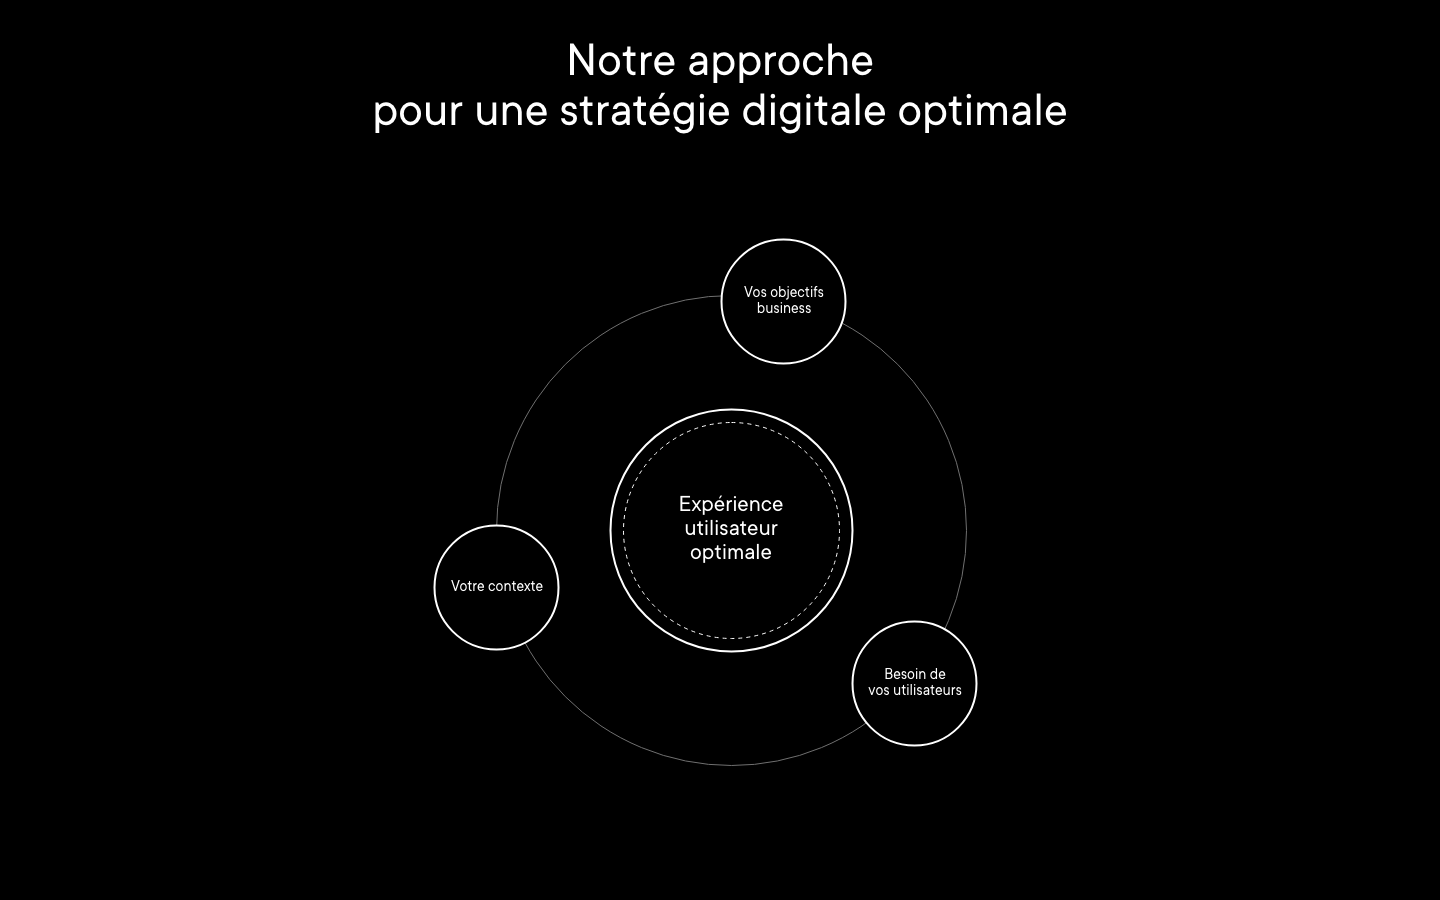 stratégie digitale optimale